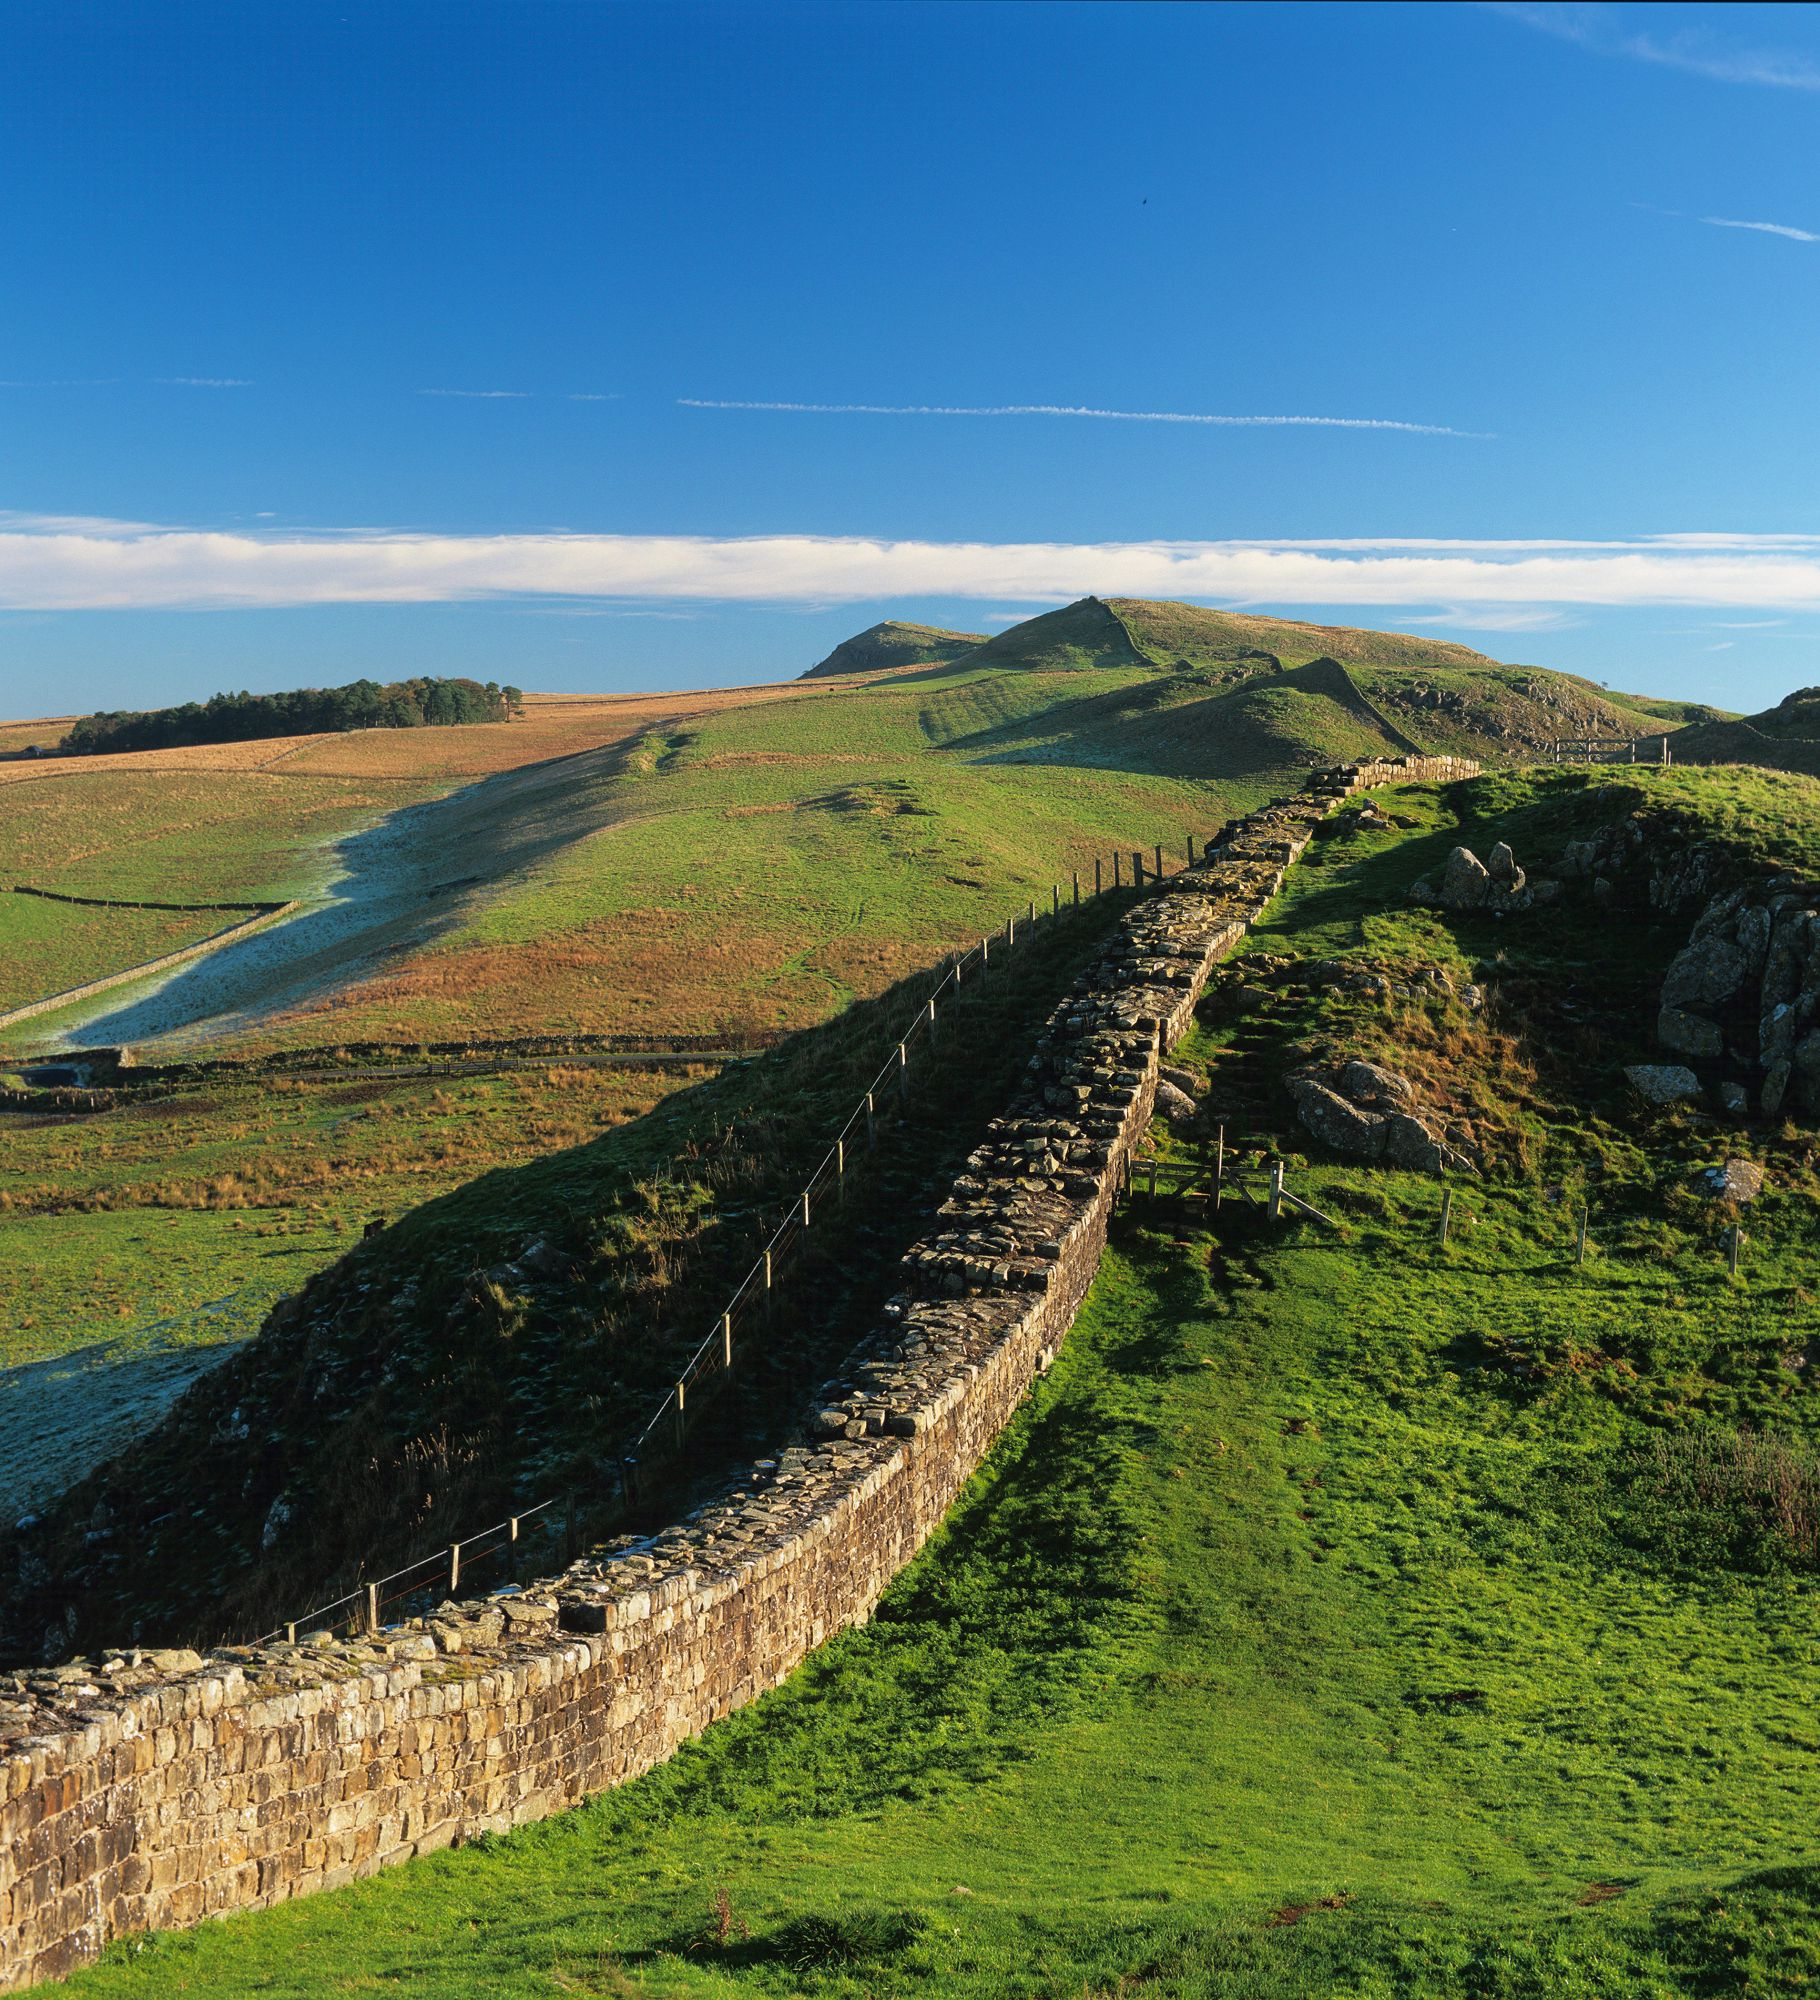 In AD122, Northumberland represented the farthest reaches of the Roman Empire under Emperor Hadrian.